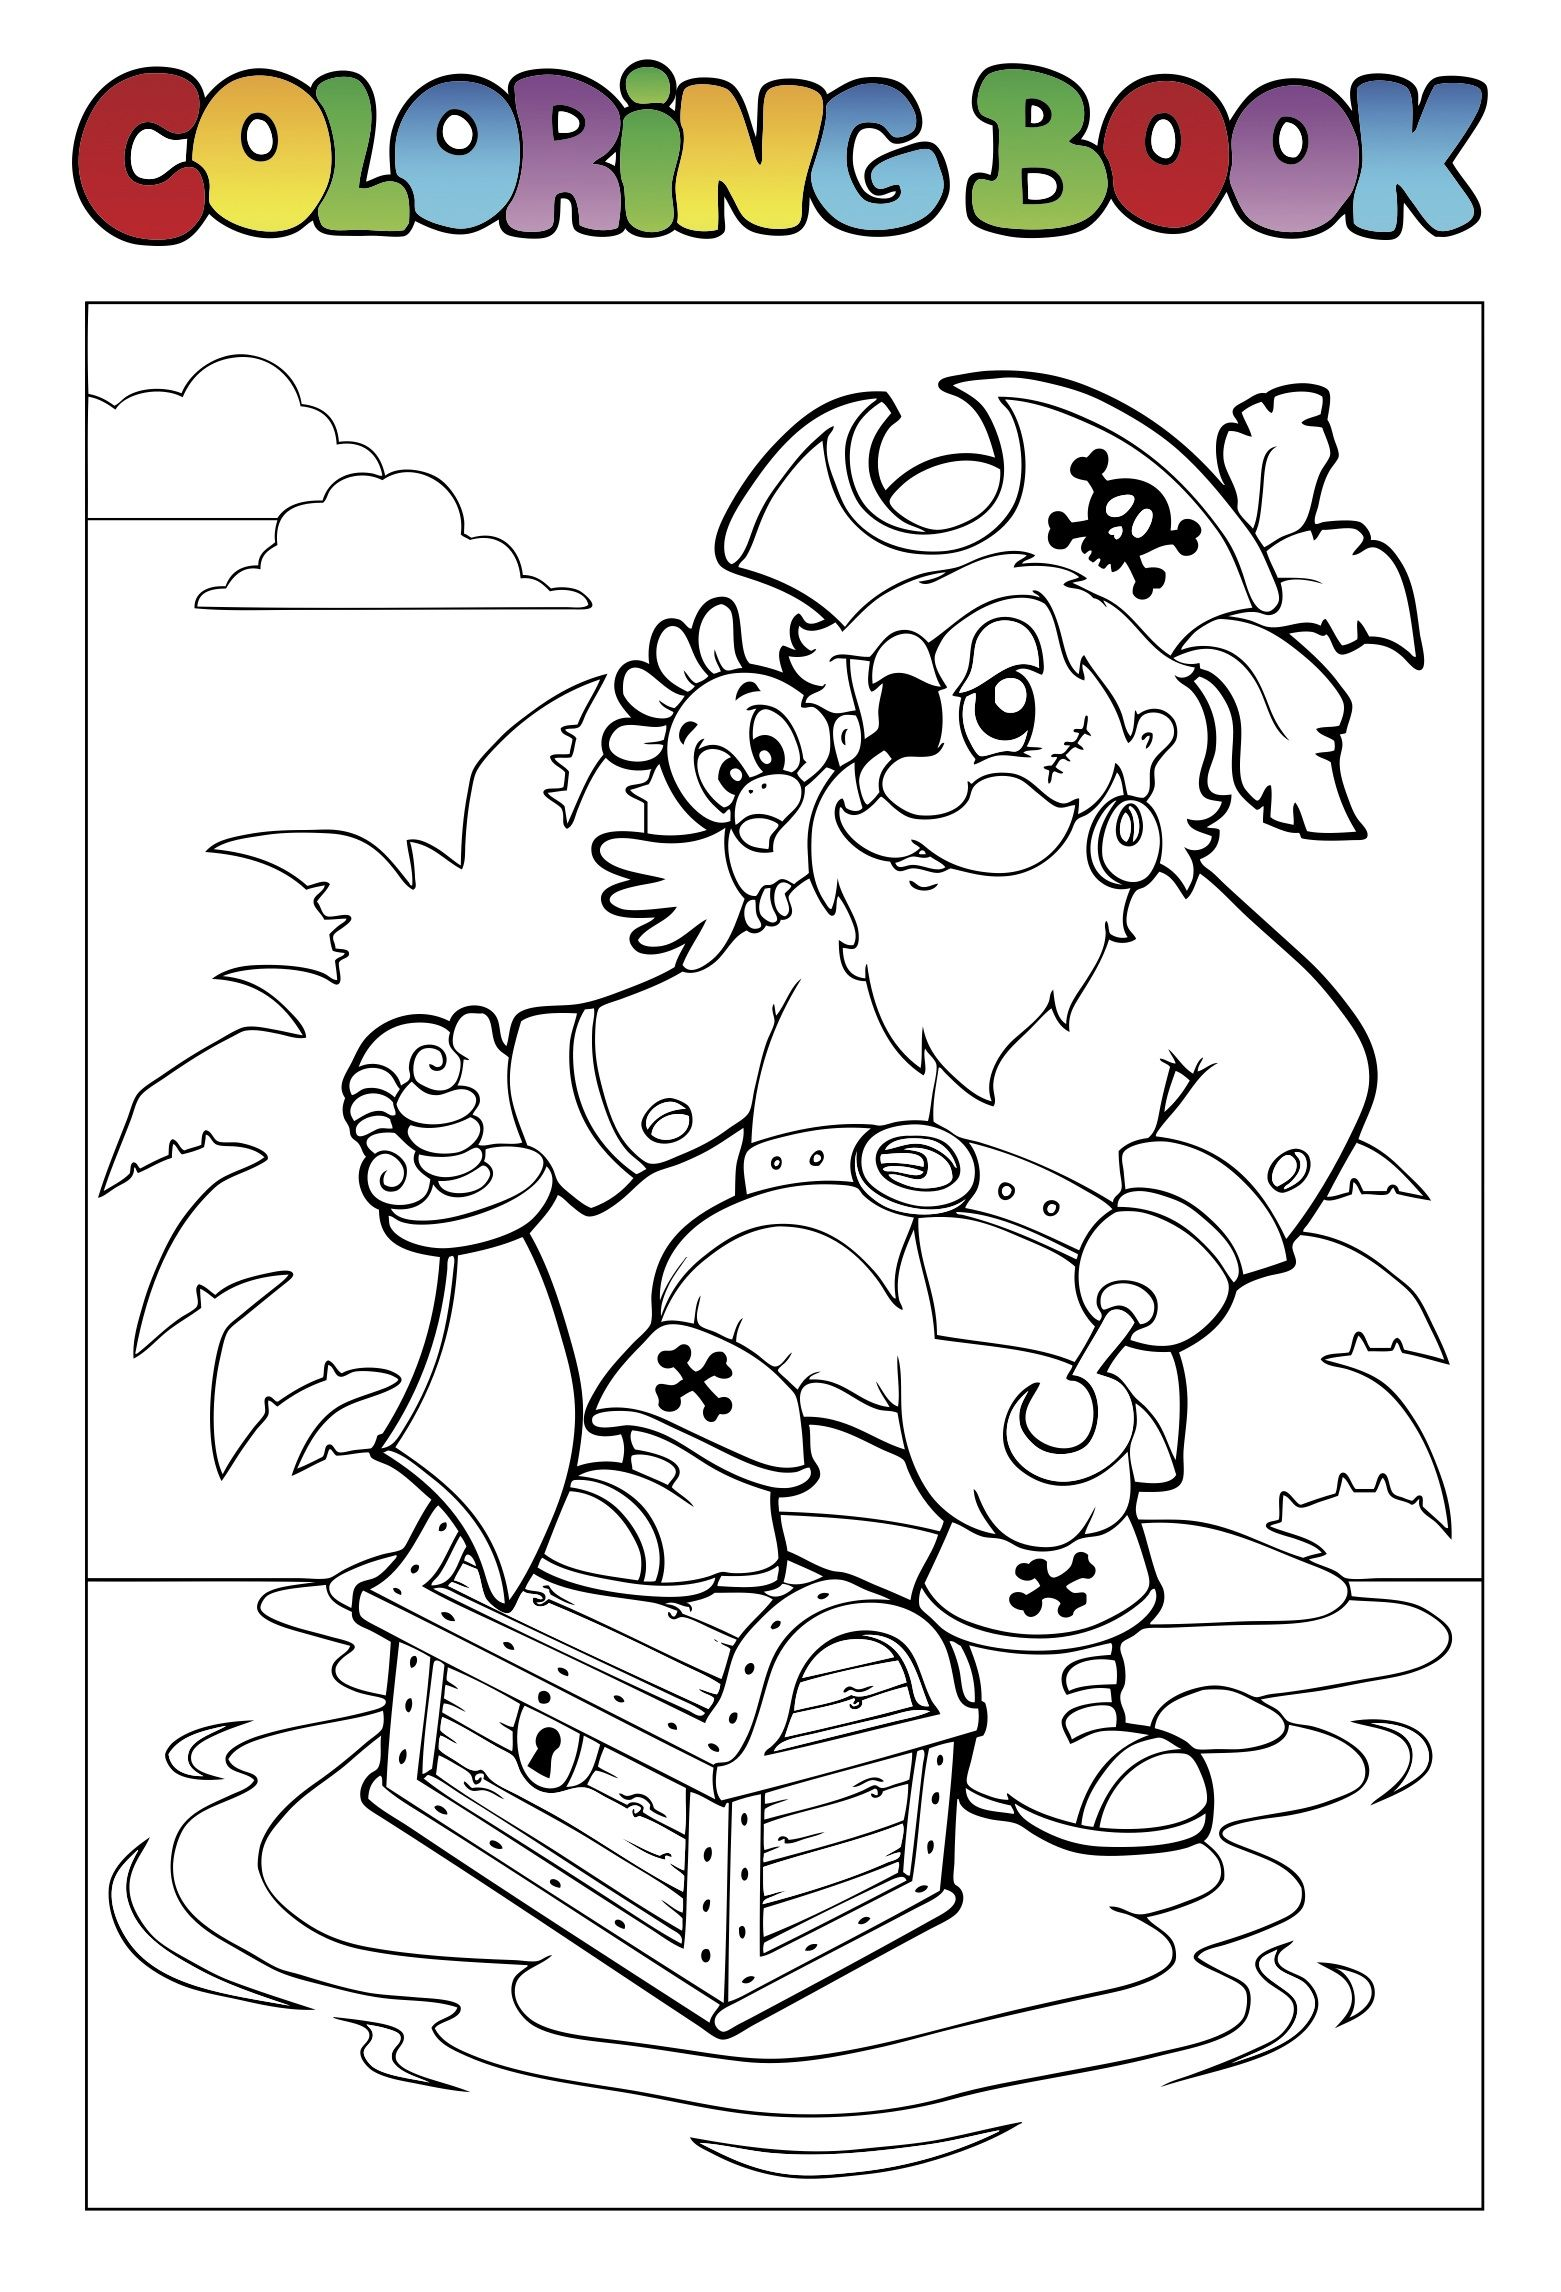 free pirate treasure chest coloring page for kids preschool